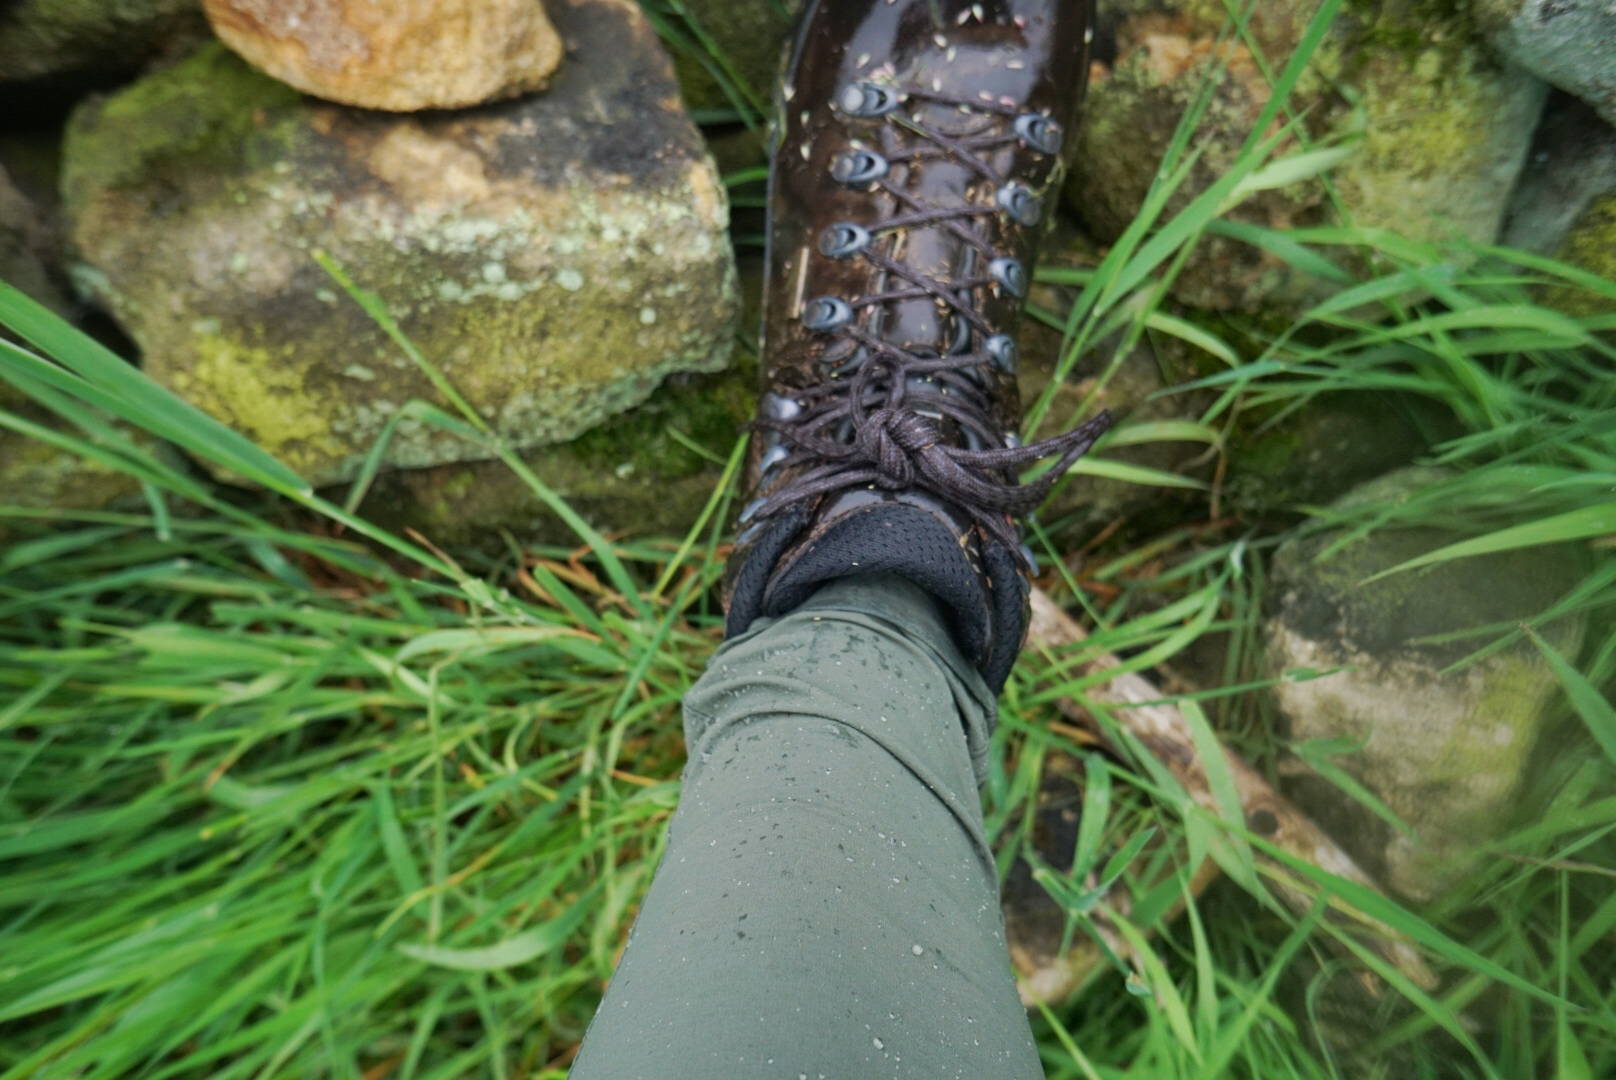 The Skinny Outdoor Trousers are water resistant and quick drying